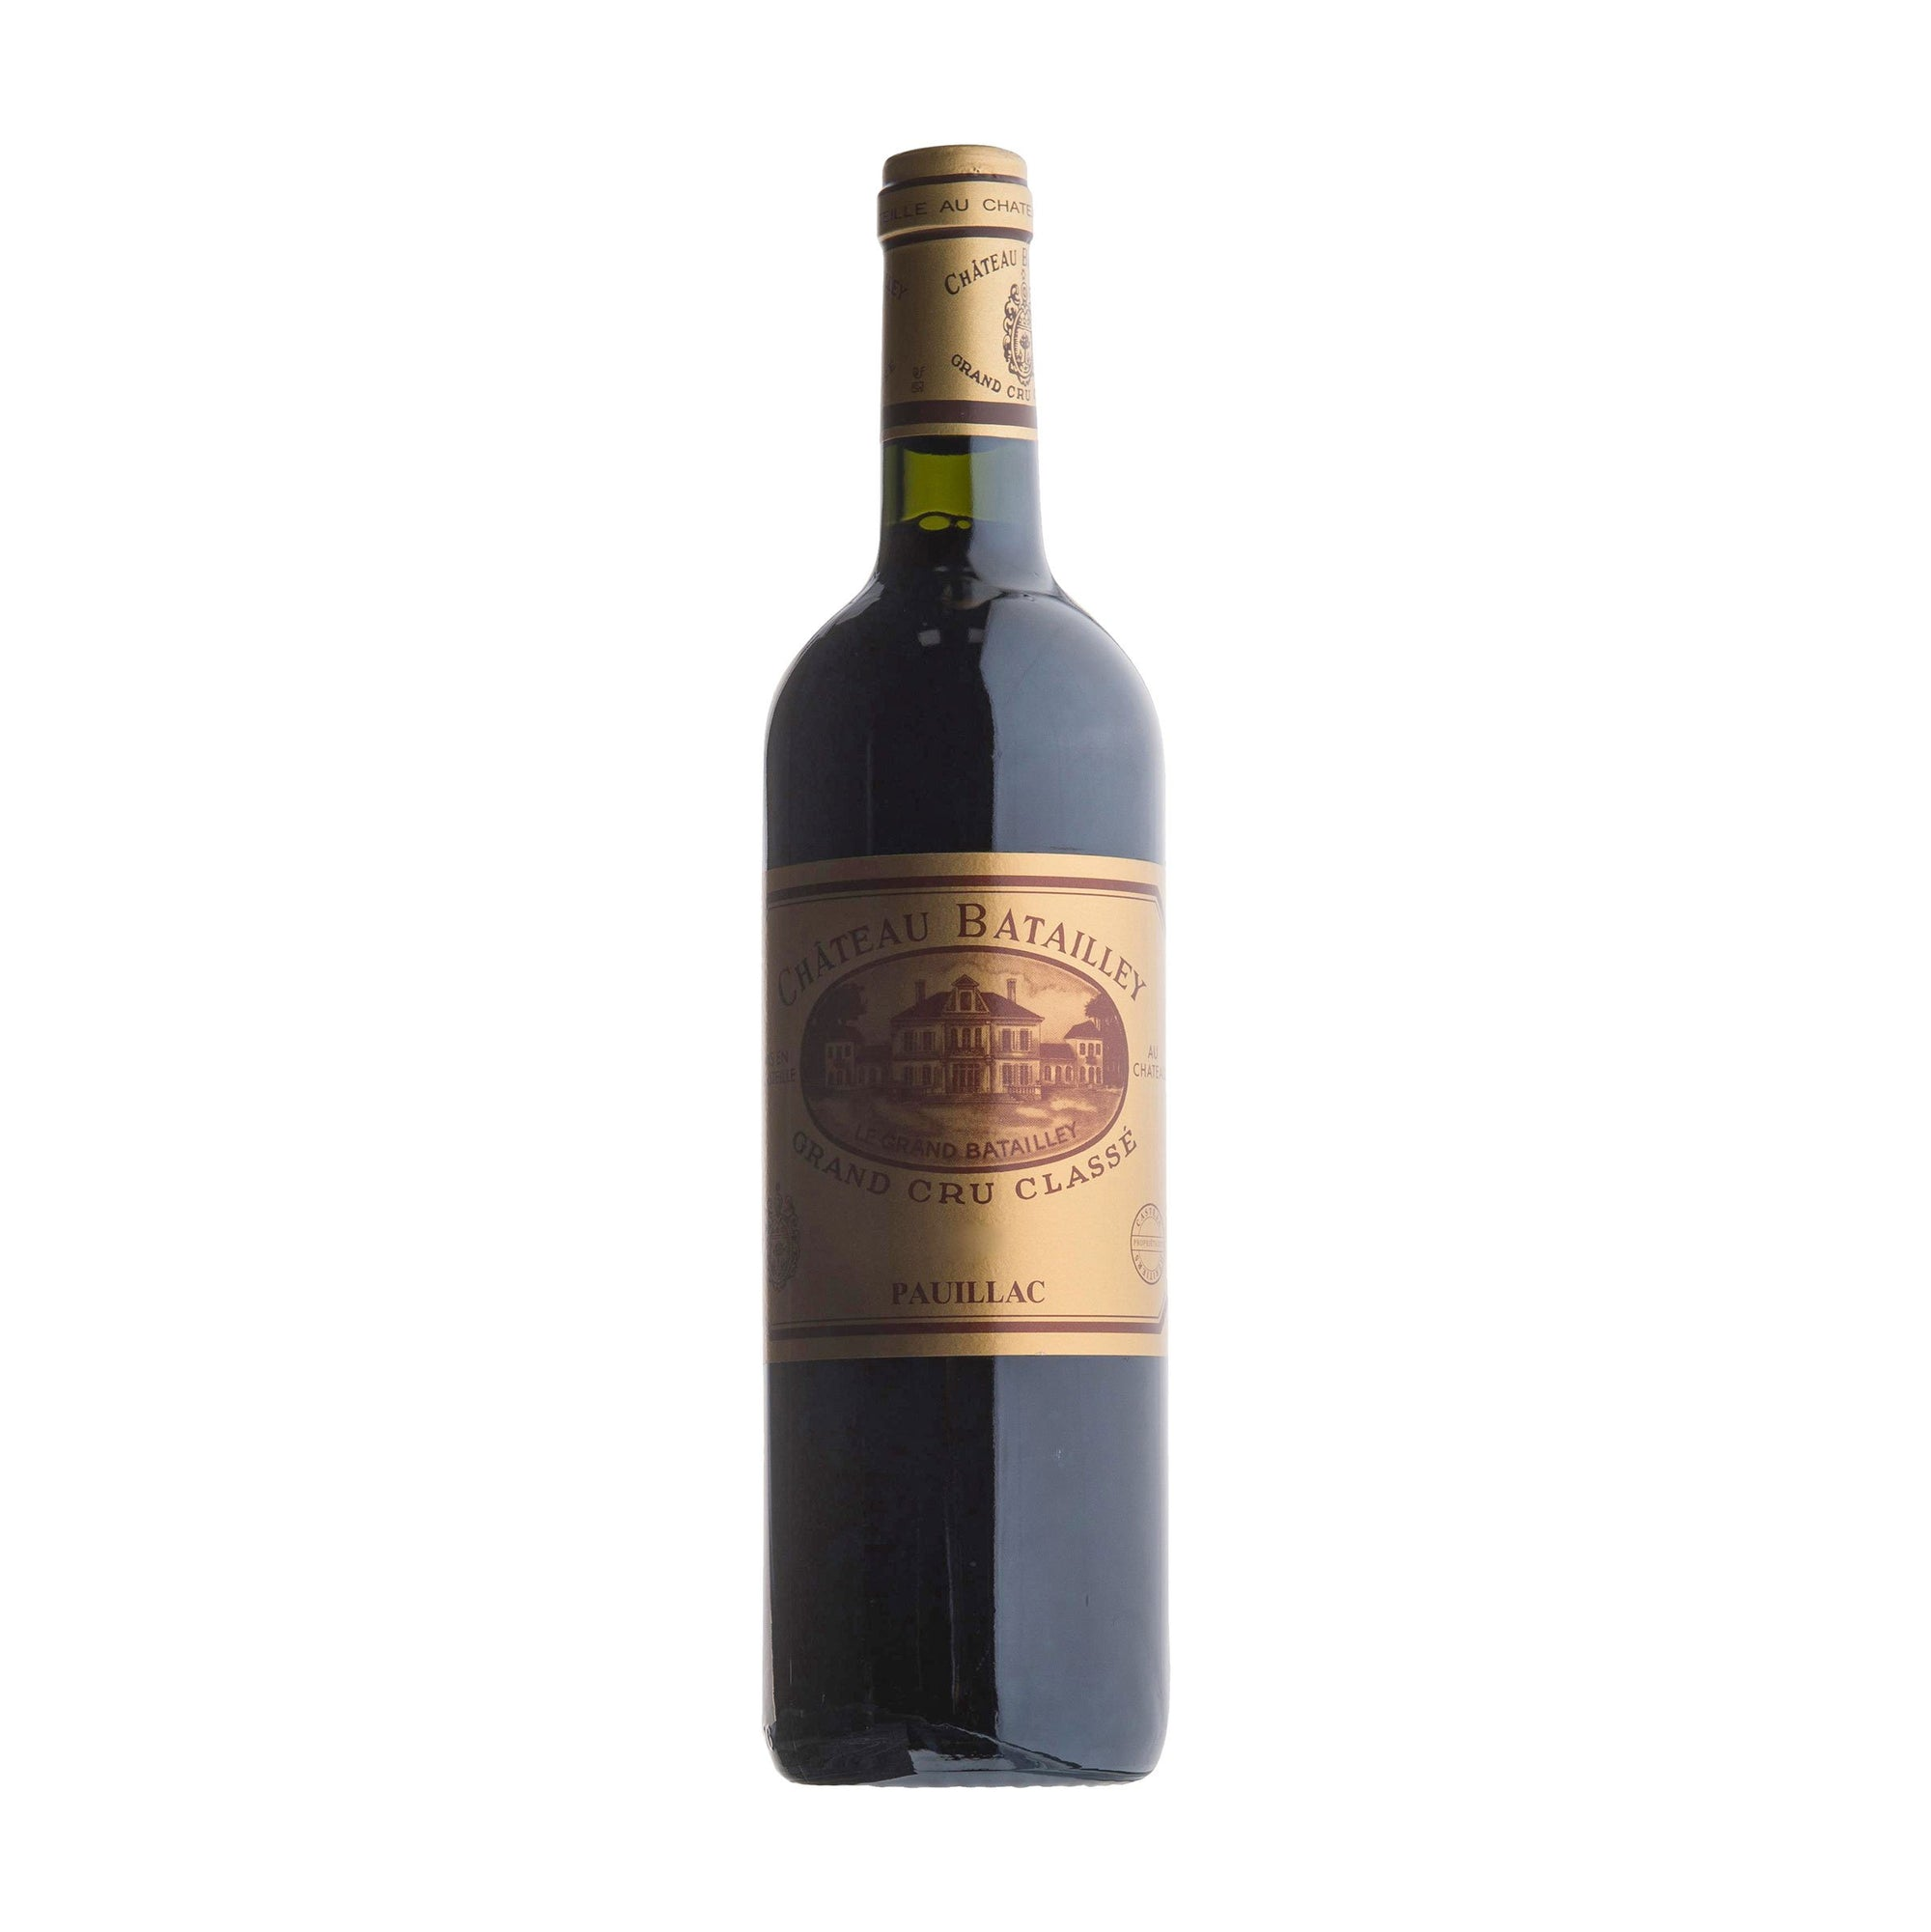 Red Wine Chateau Batailley Pauillac 2005 (4392407859223)